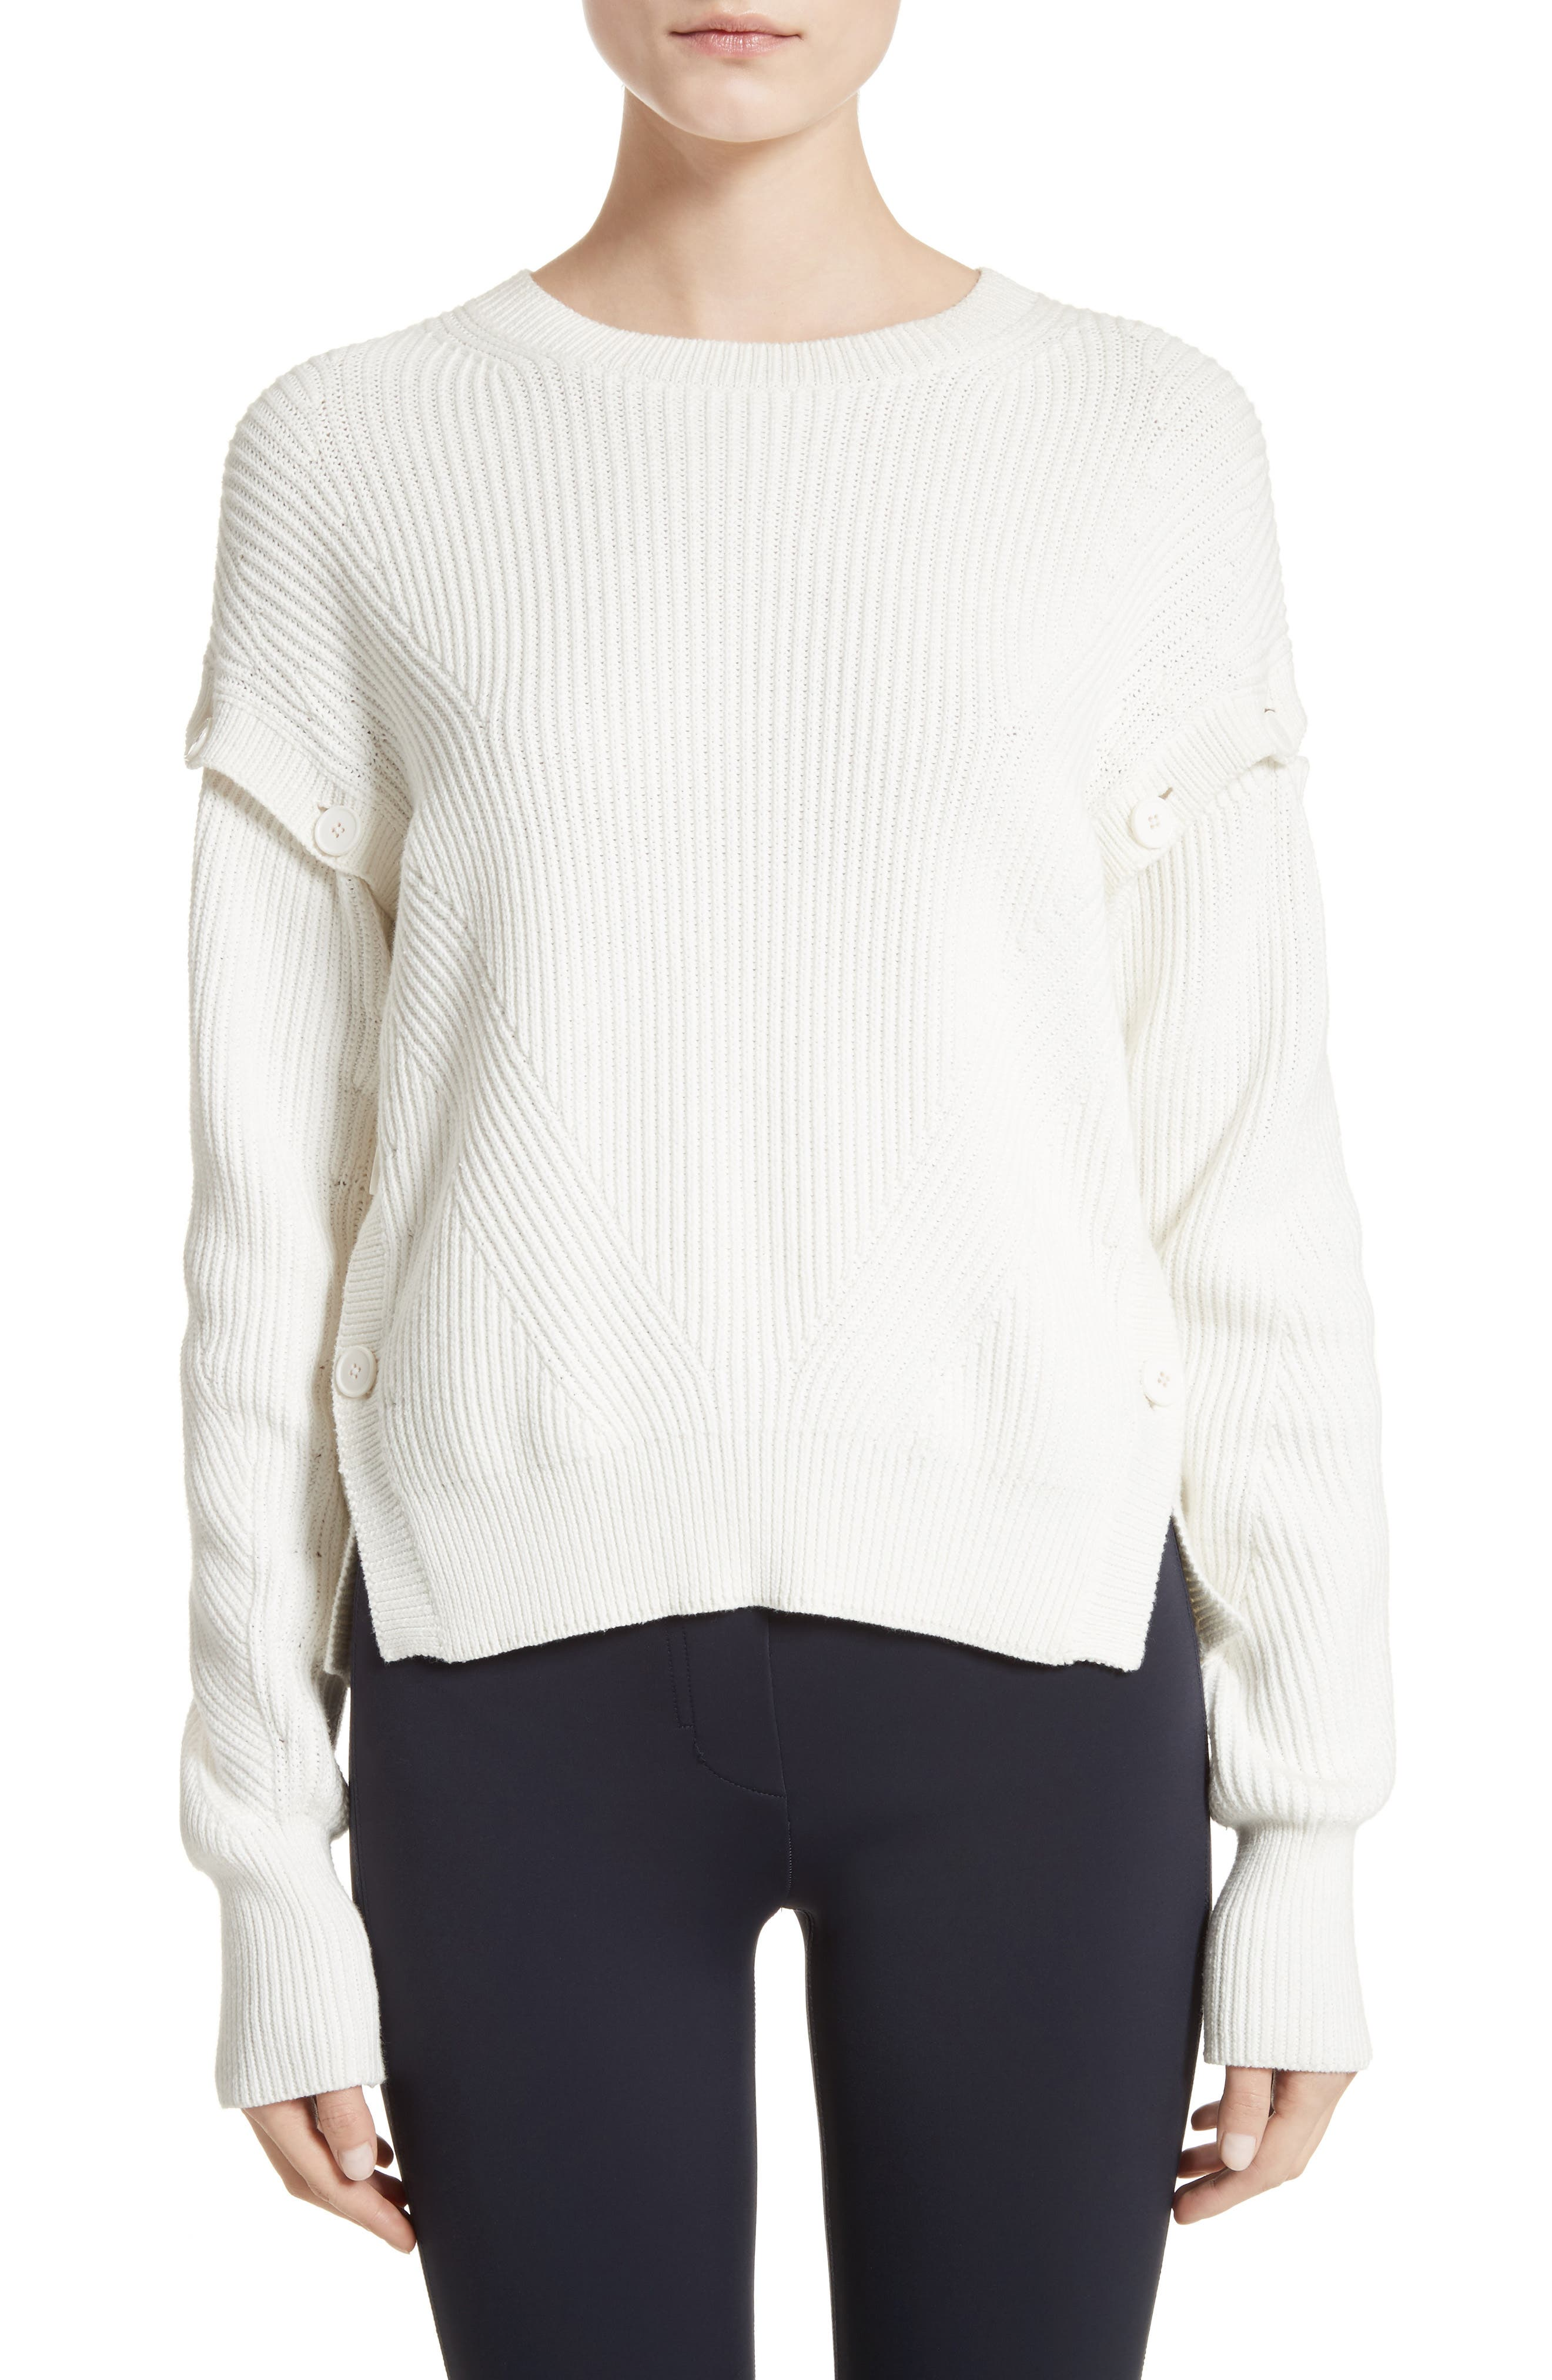 Helmut Lang Cotton Sweater with Detachable Sleeves